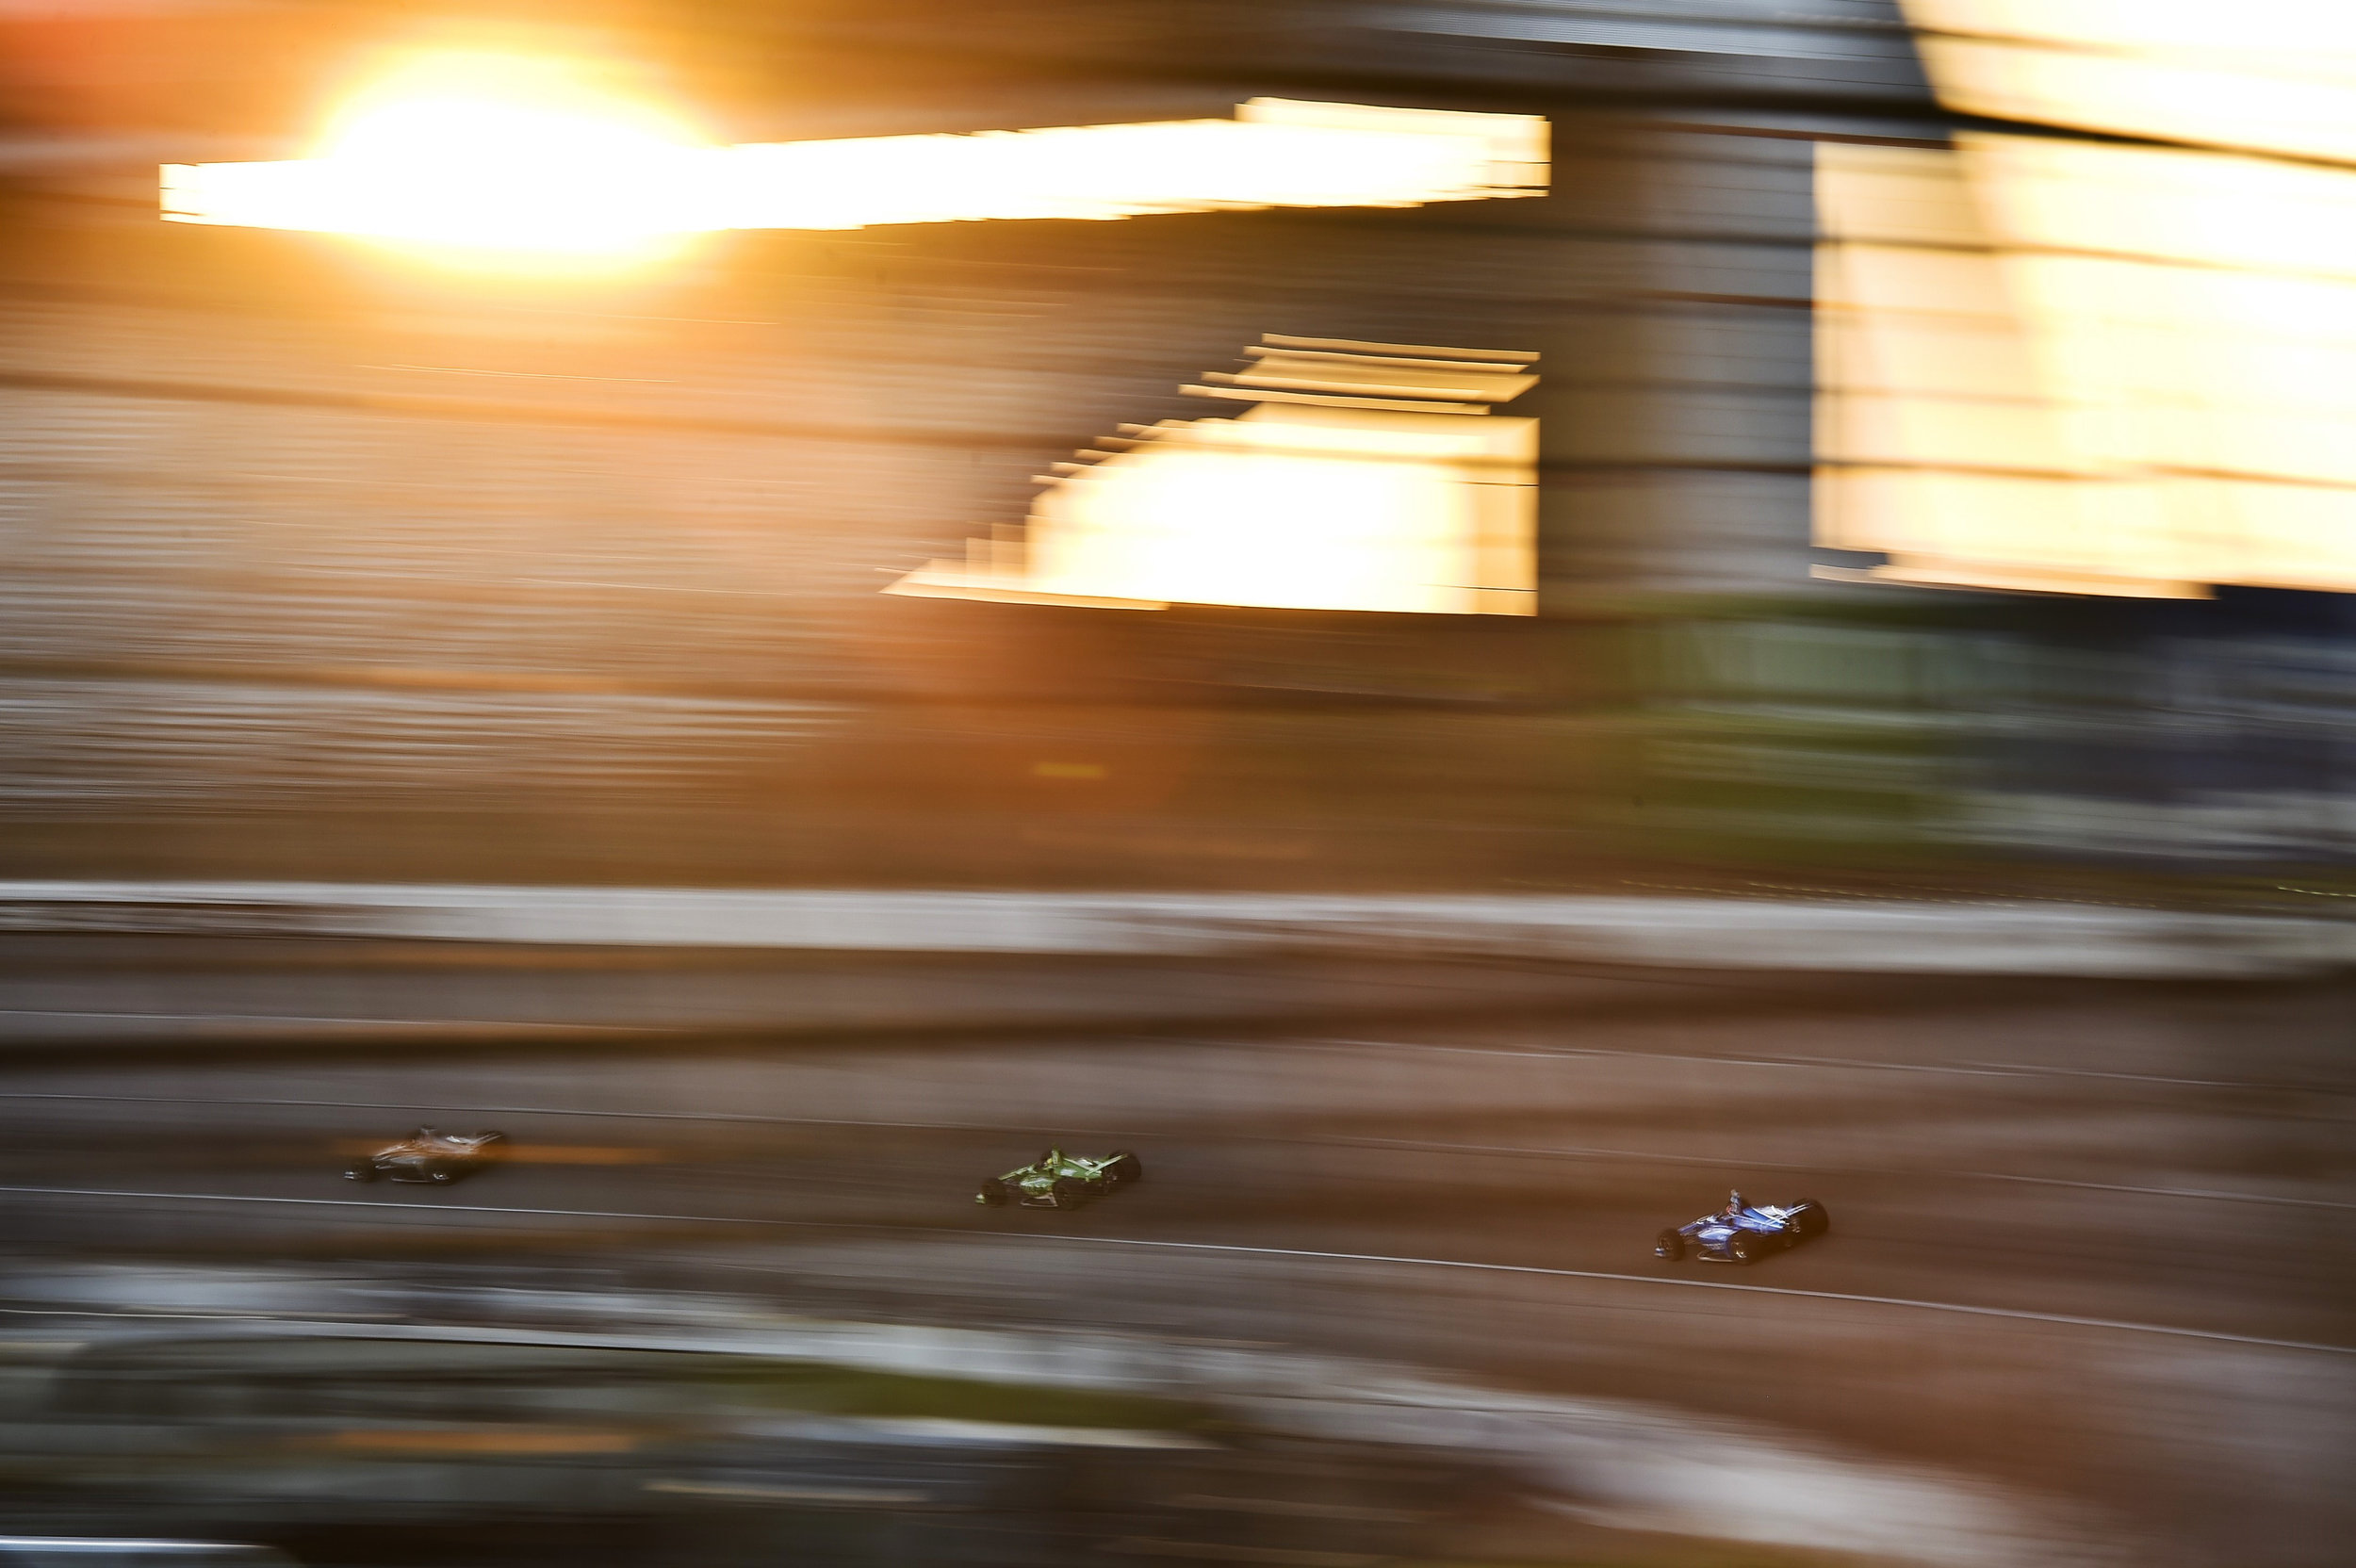 Texas motor speedway is always a race I look forward to. The evening light makes for stunning images we are only able to make in these conditions a few times a year. Their they go, racing into the sunset! Ahhh I love it.